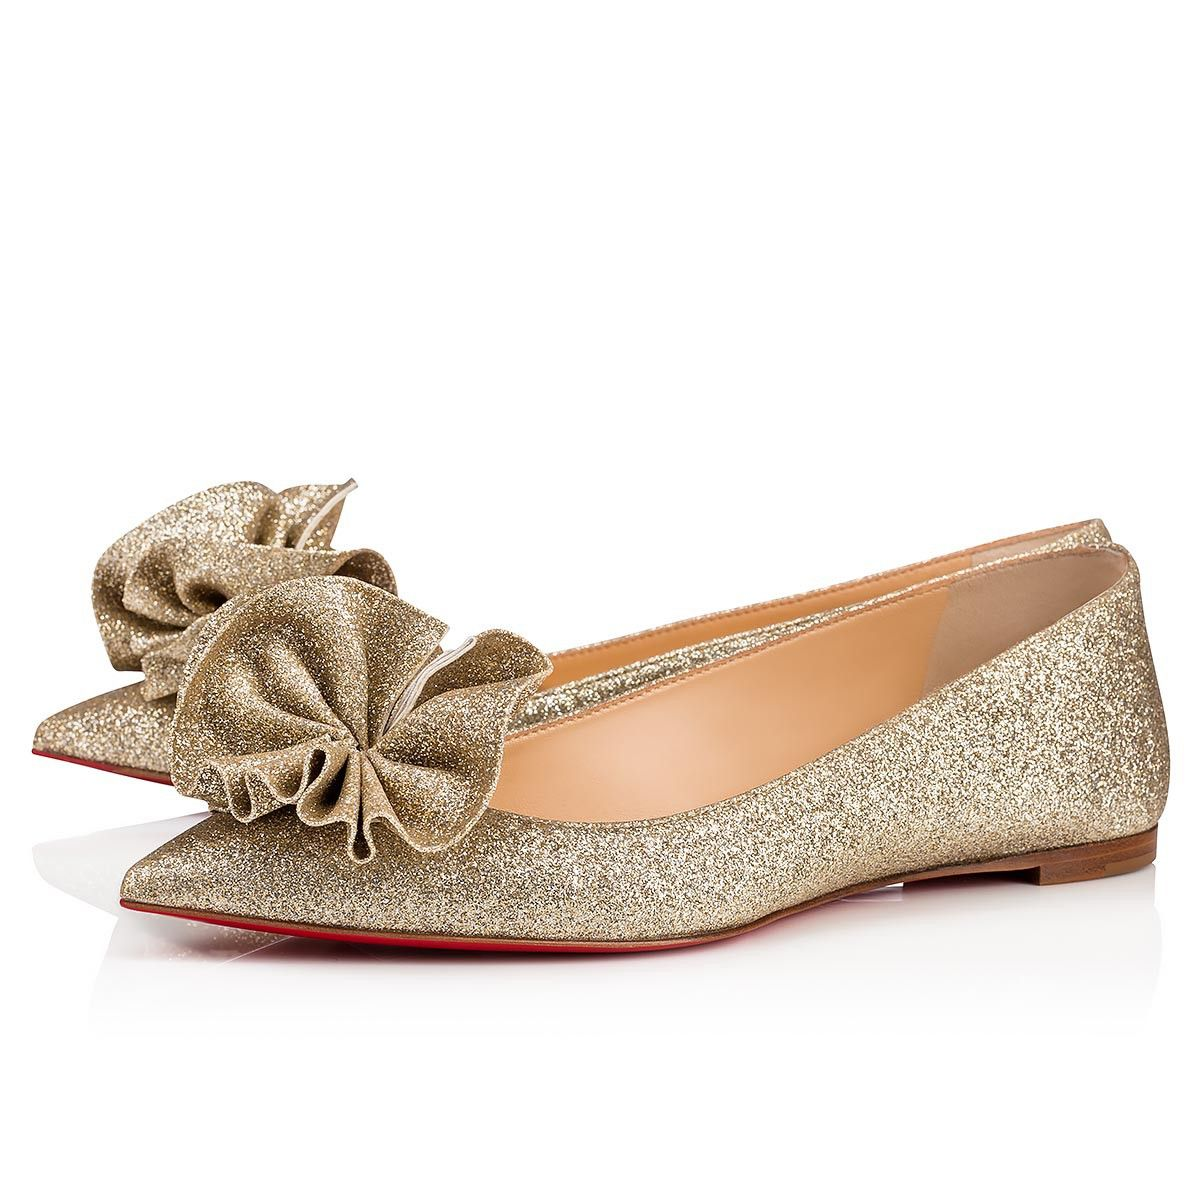 31345c8d83ce Christian Louboutin United States Official Online Boutique - Anemosea Flat  Platine Glitter Tonic available online. Discover more Women Shoes by  Christian ...